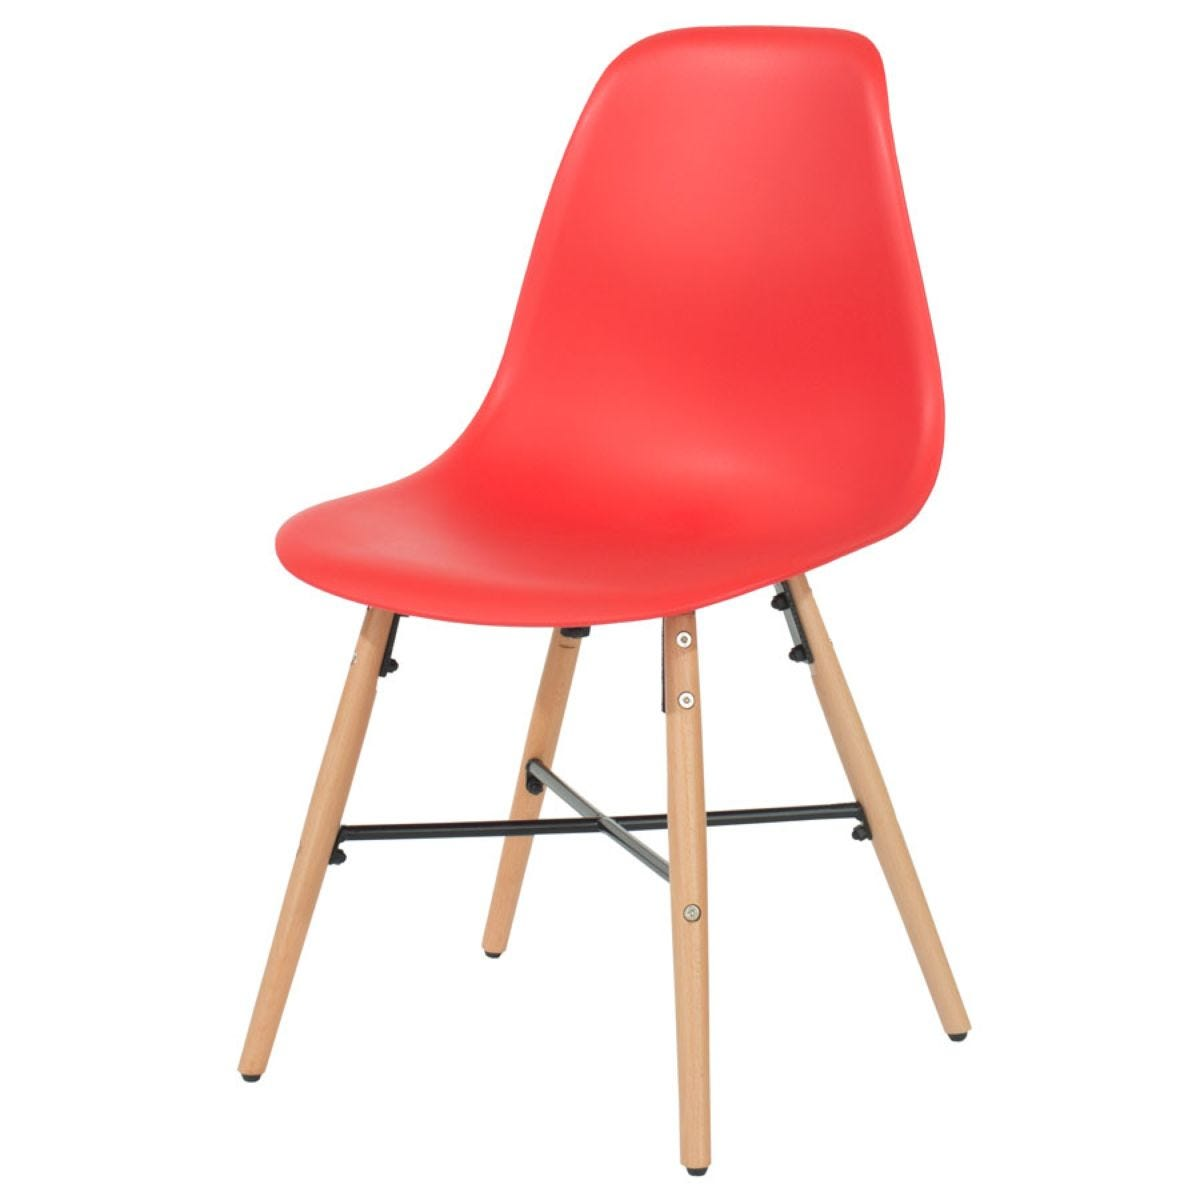 Roloku Pair of Chairs with Metal Cross Rails - Red